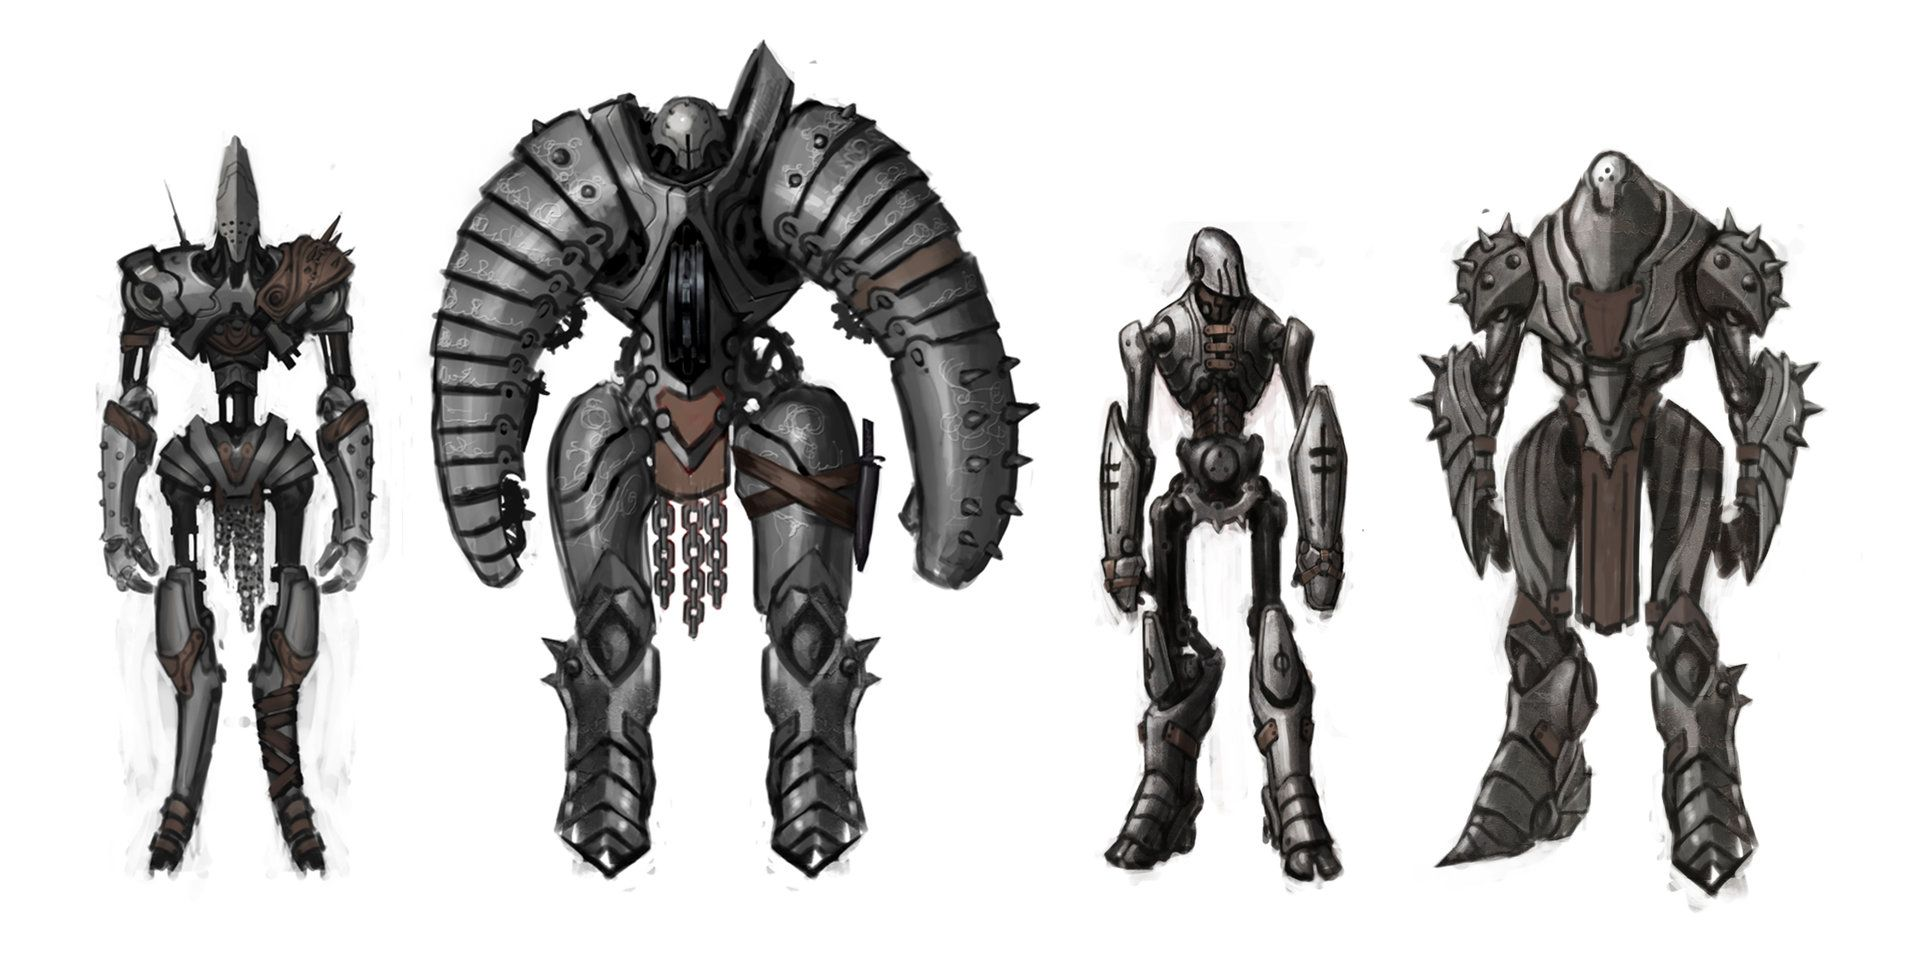 concept art for infinity blade 3, the living machines  | RPG